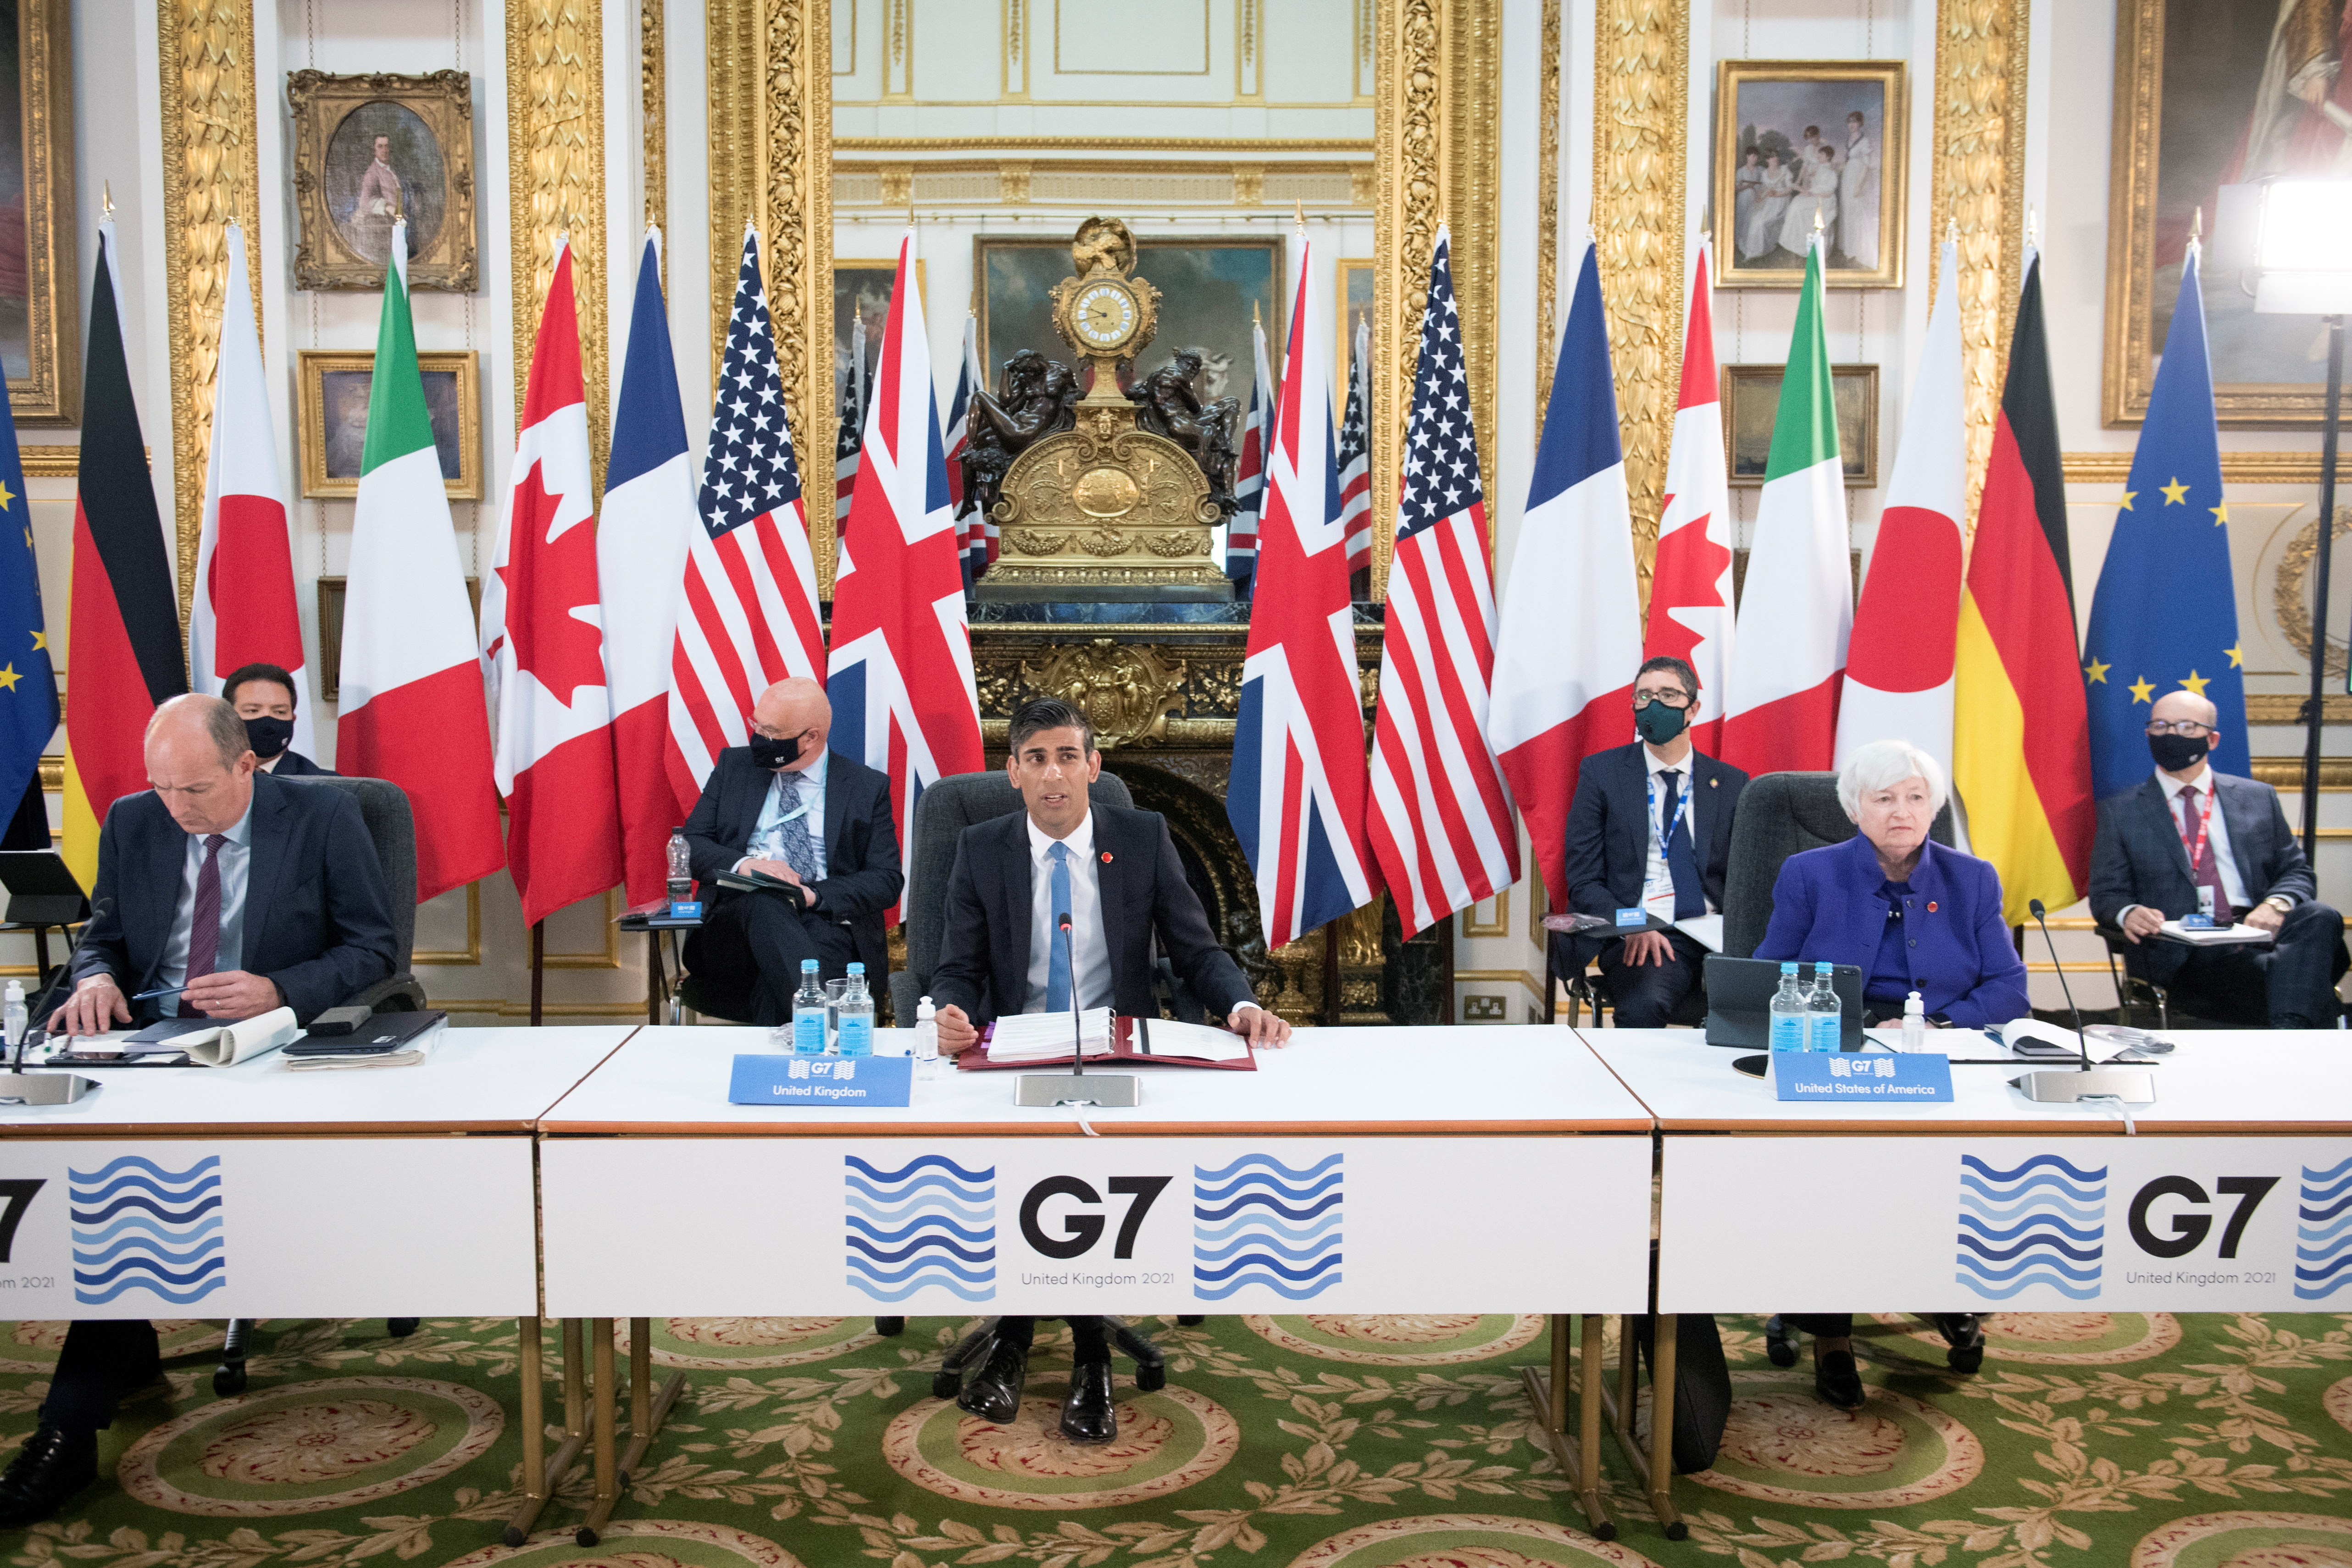 Britain's Chancellor of the Exchequer Rishi Sunak speaks at a meeting of finance ministers from across the G7 nations ahead of the G7 leaders' summit, at Lancaster House in London, Britain June 4, 2021. Stefan Rousseau/PA Wire/Pool via REUTERS